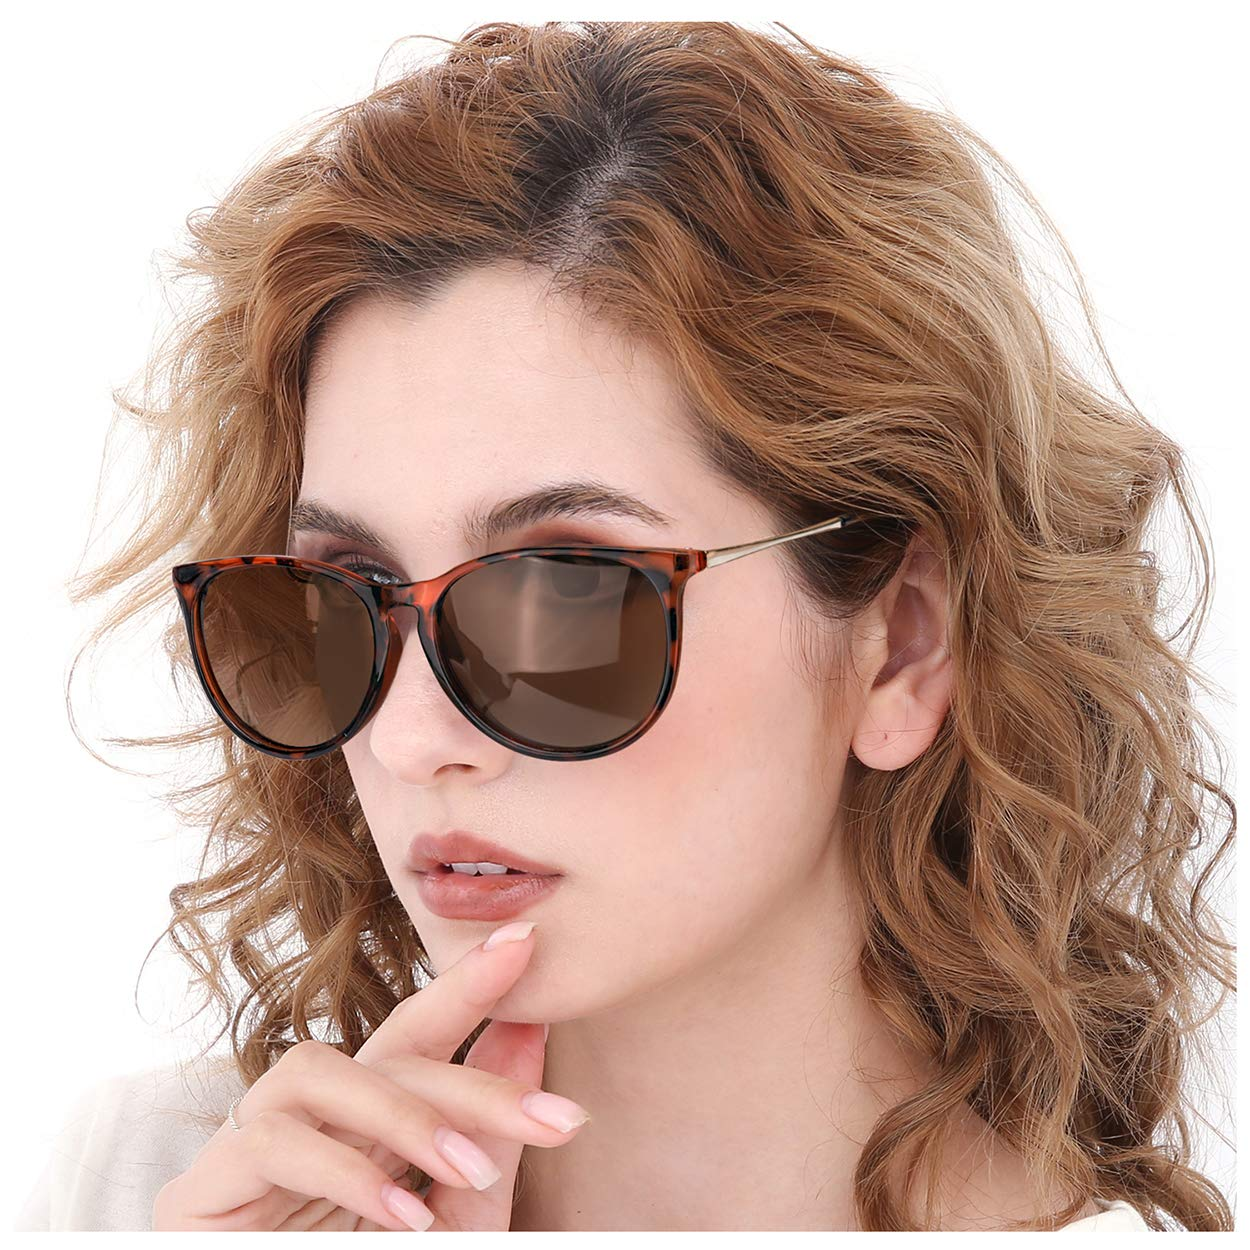 Leopard Brown Frame Brown Gradient Retro Round Lens TJUTR Women's Retro Round Polarized Sunglasses, Vintage Designer Style Eyewear with UV Predection for Driving Shopping